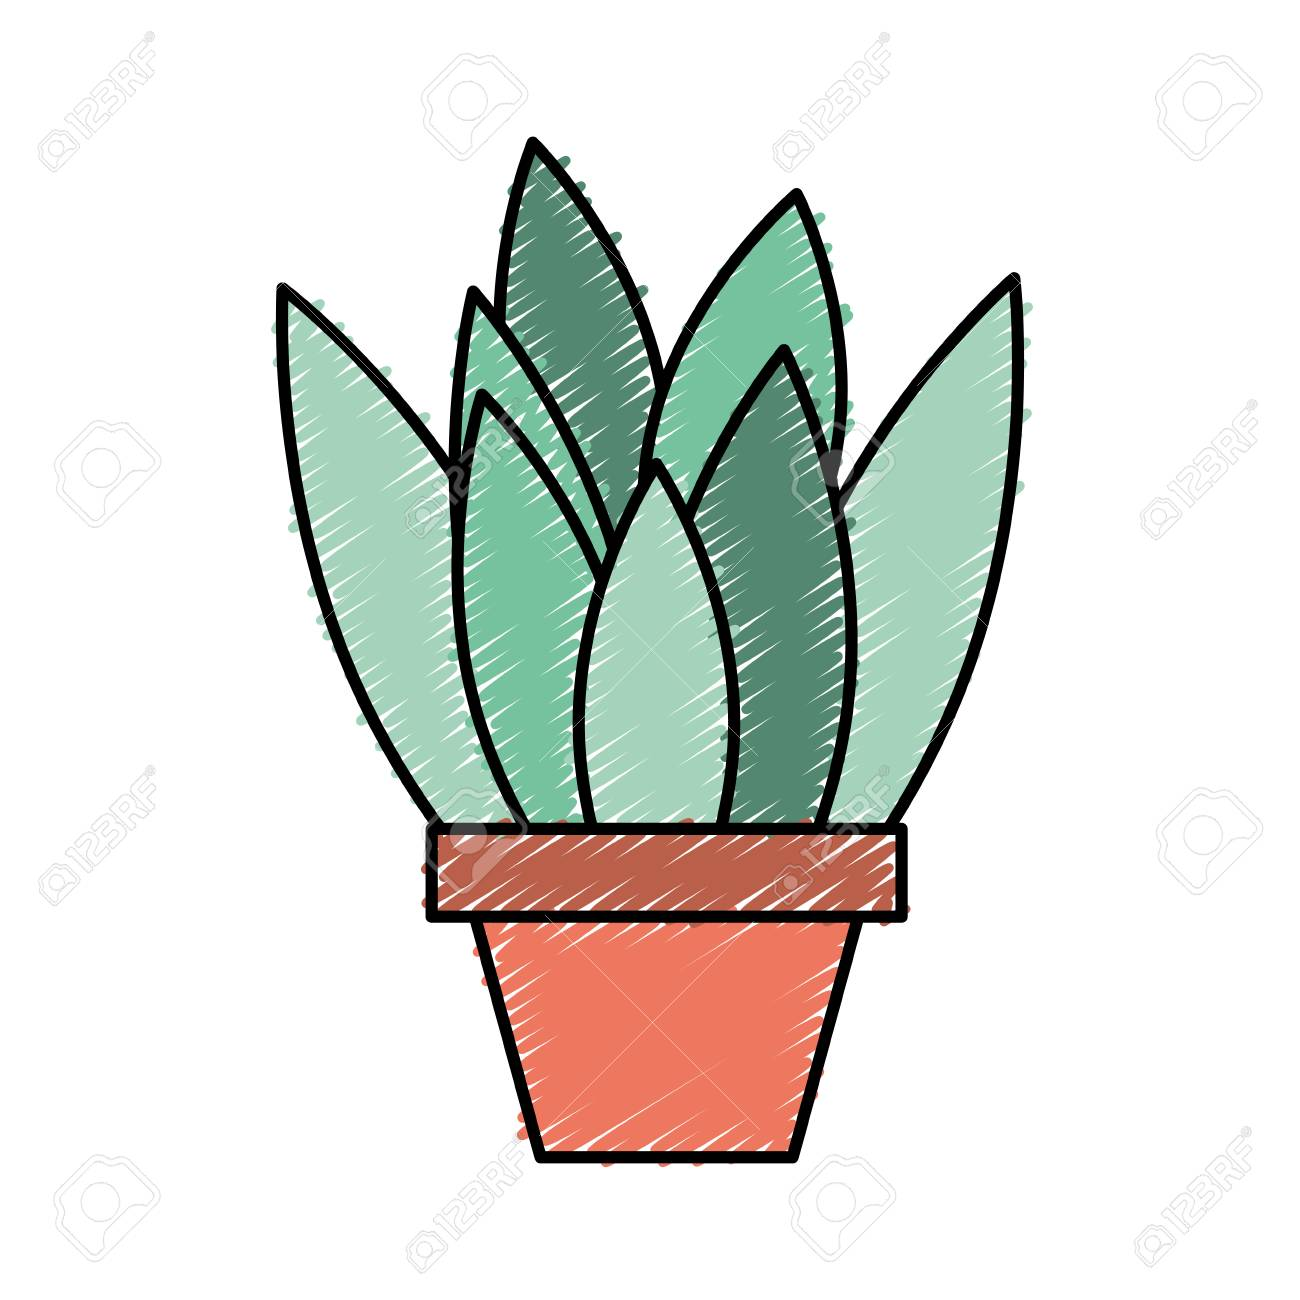 Potted Plant Leaves Interior Decoration Vector Illustration Drawing Royalty Free Cliparts Vectors And Stock Illustration Image 97718320